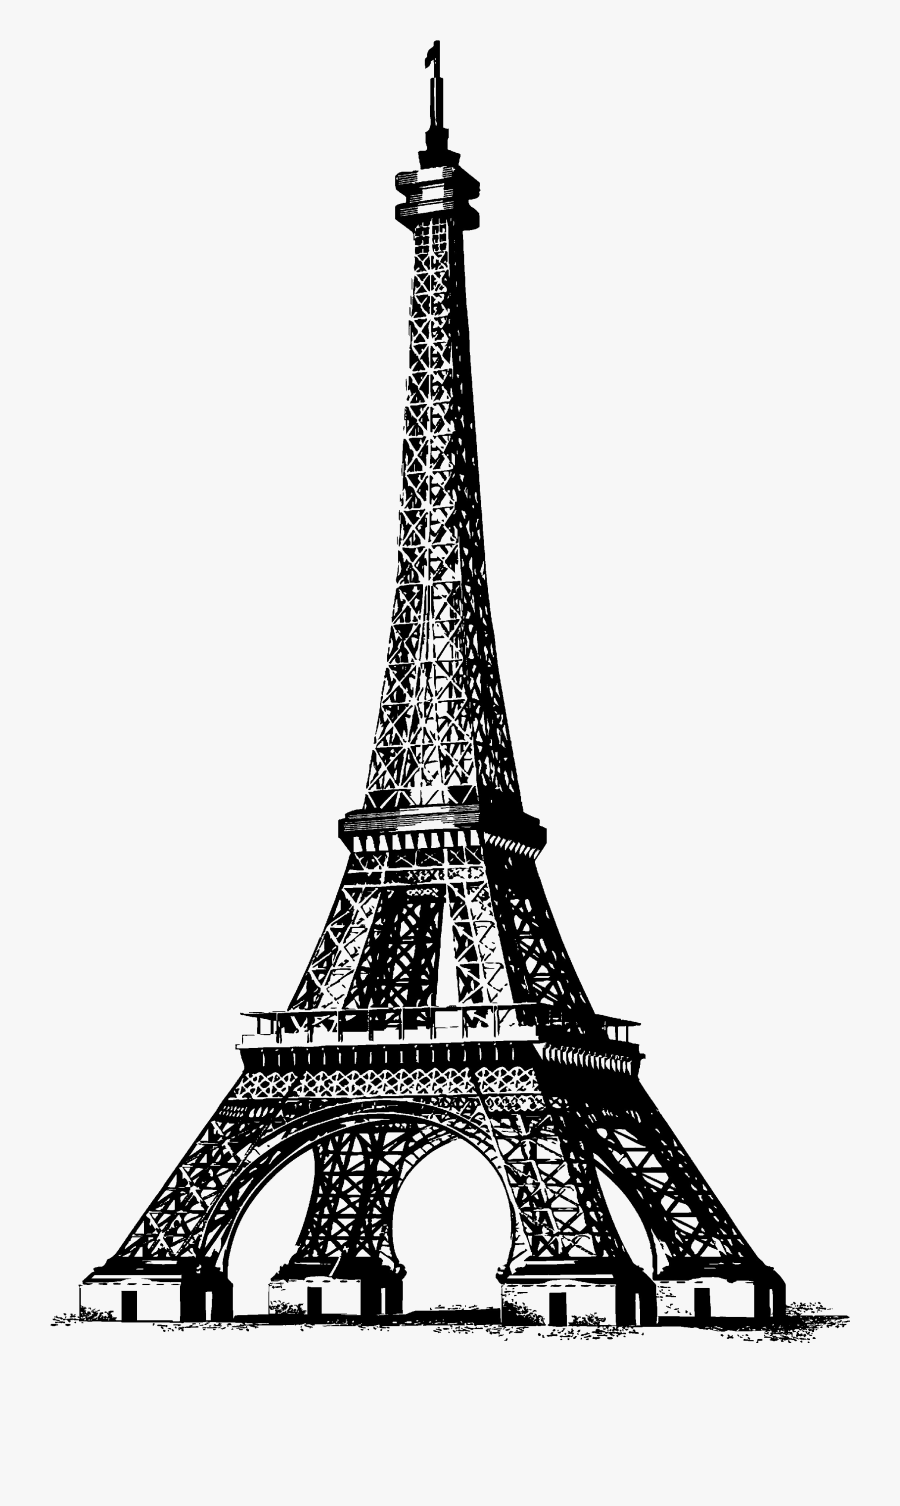 Eiffel Tower Free Download Clip Art Free Clip Art - Realistic Eiffel Tower Drawing, Transparent Clipart